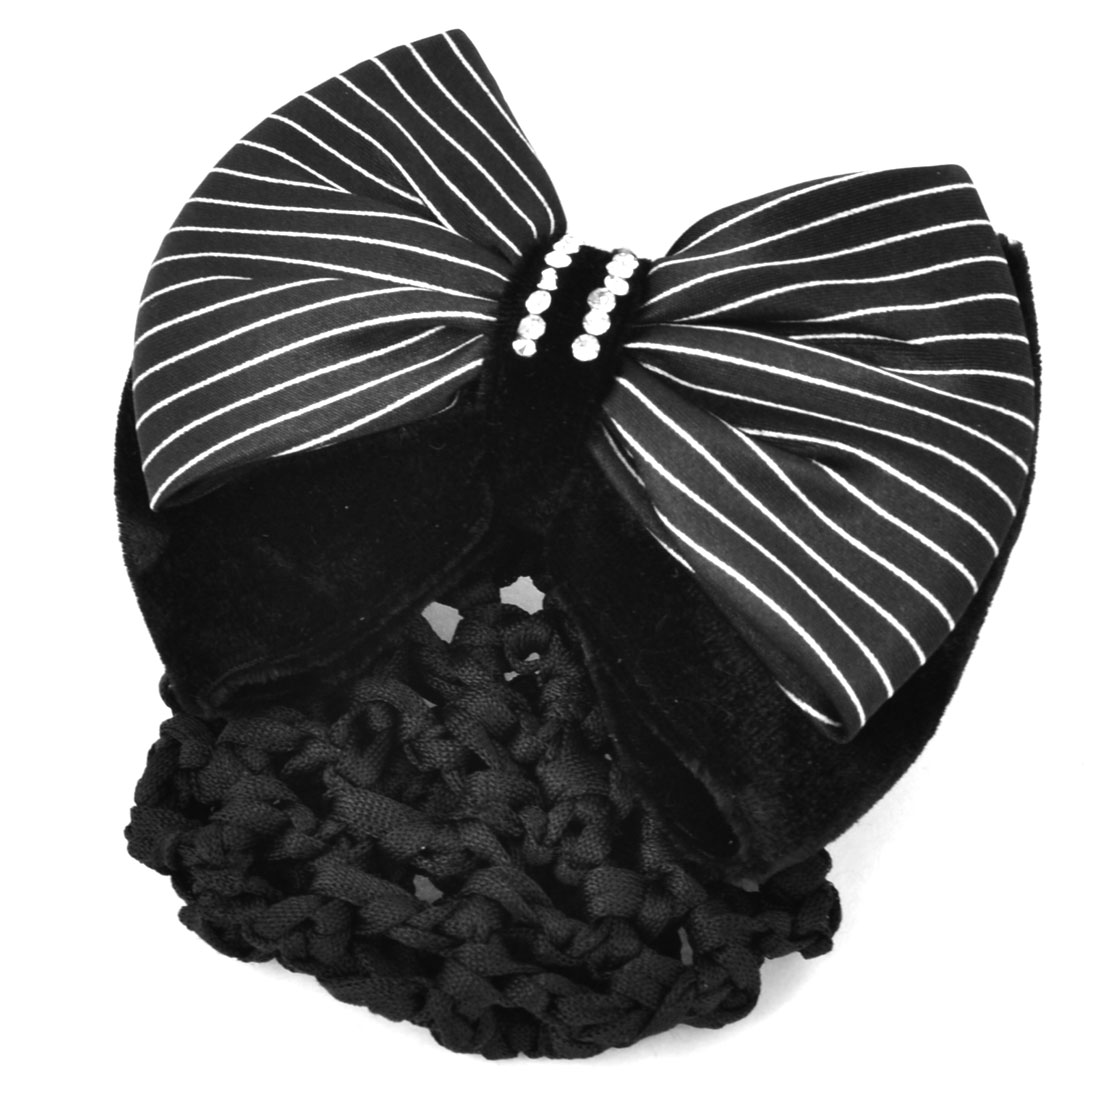 Glitter Rhinestones Inlaid Striped Polyester Bowknot Decor Snood Net Barrette French Hair Clip Bun Cover Black White for Ladies